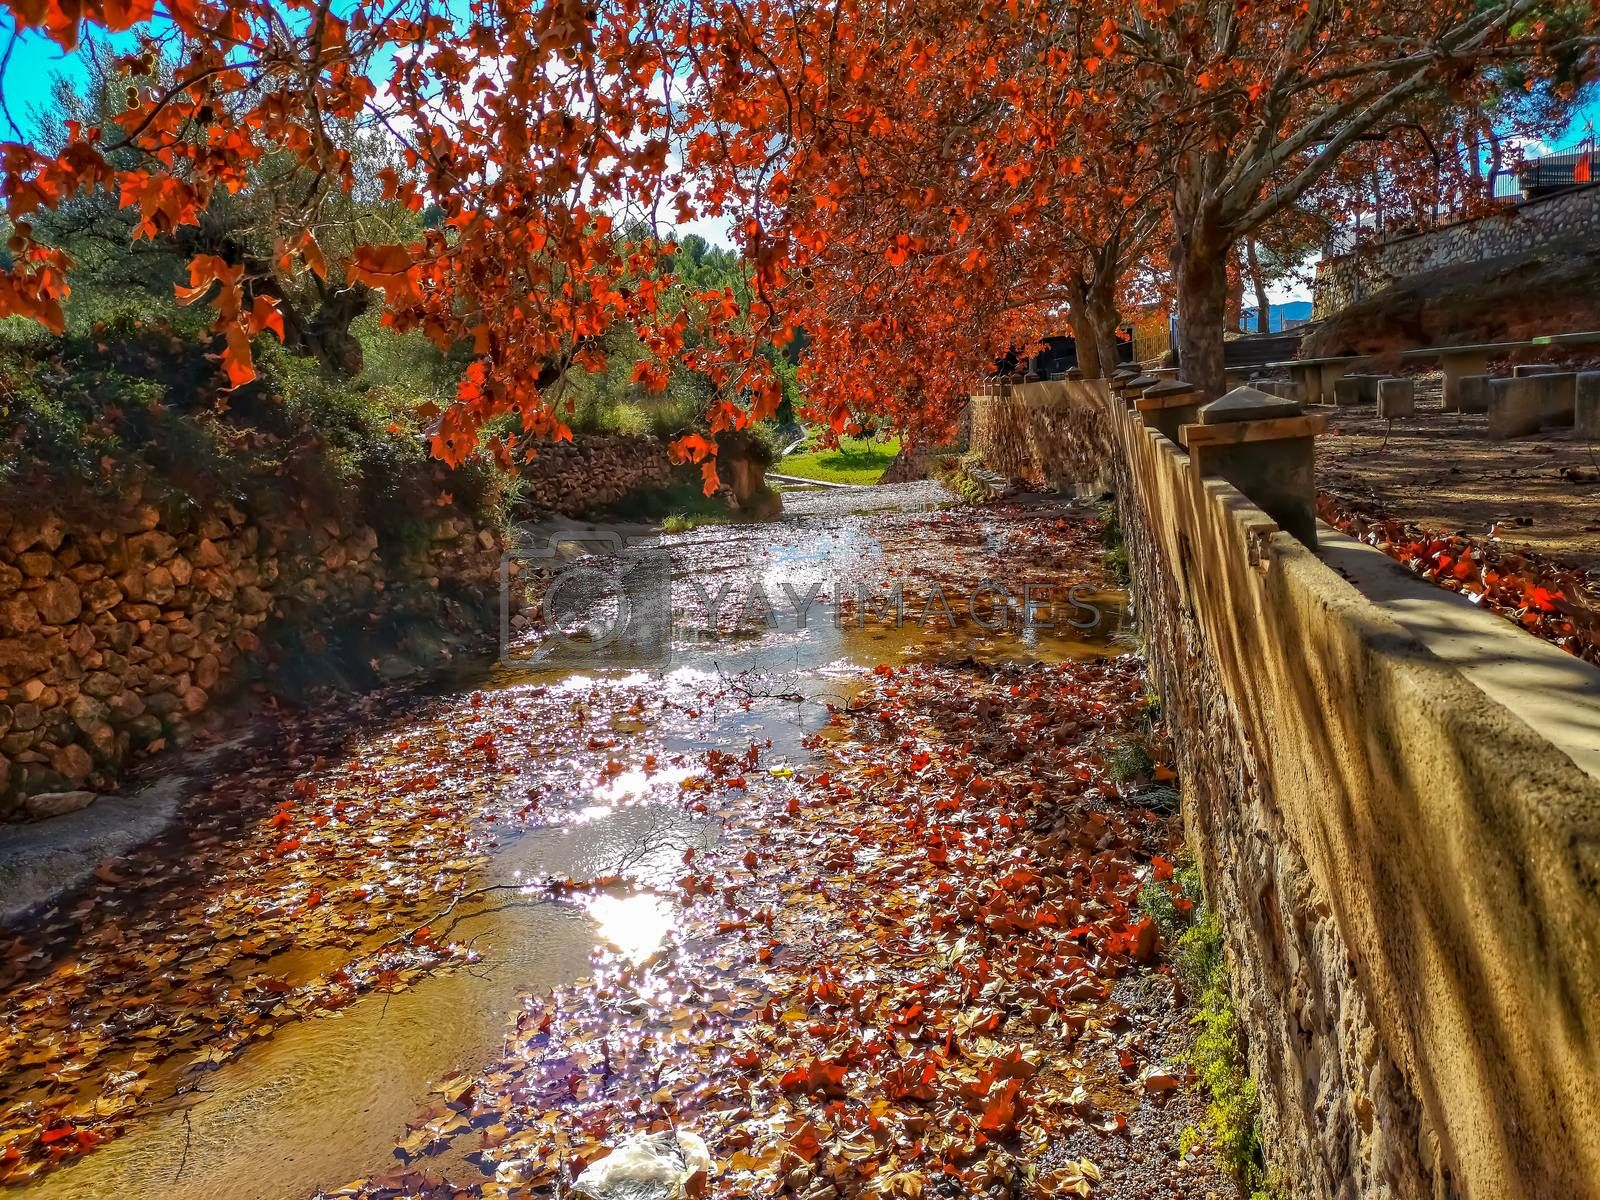 Autumnal landscape with many dry leaves with brown tones